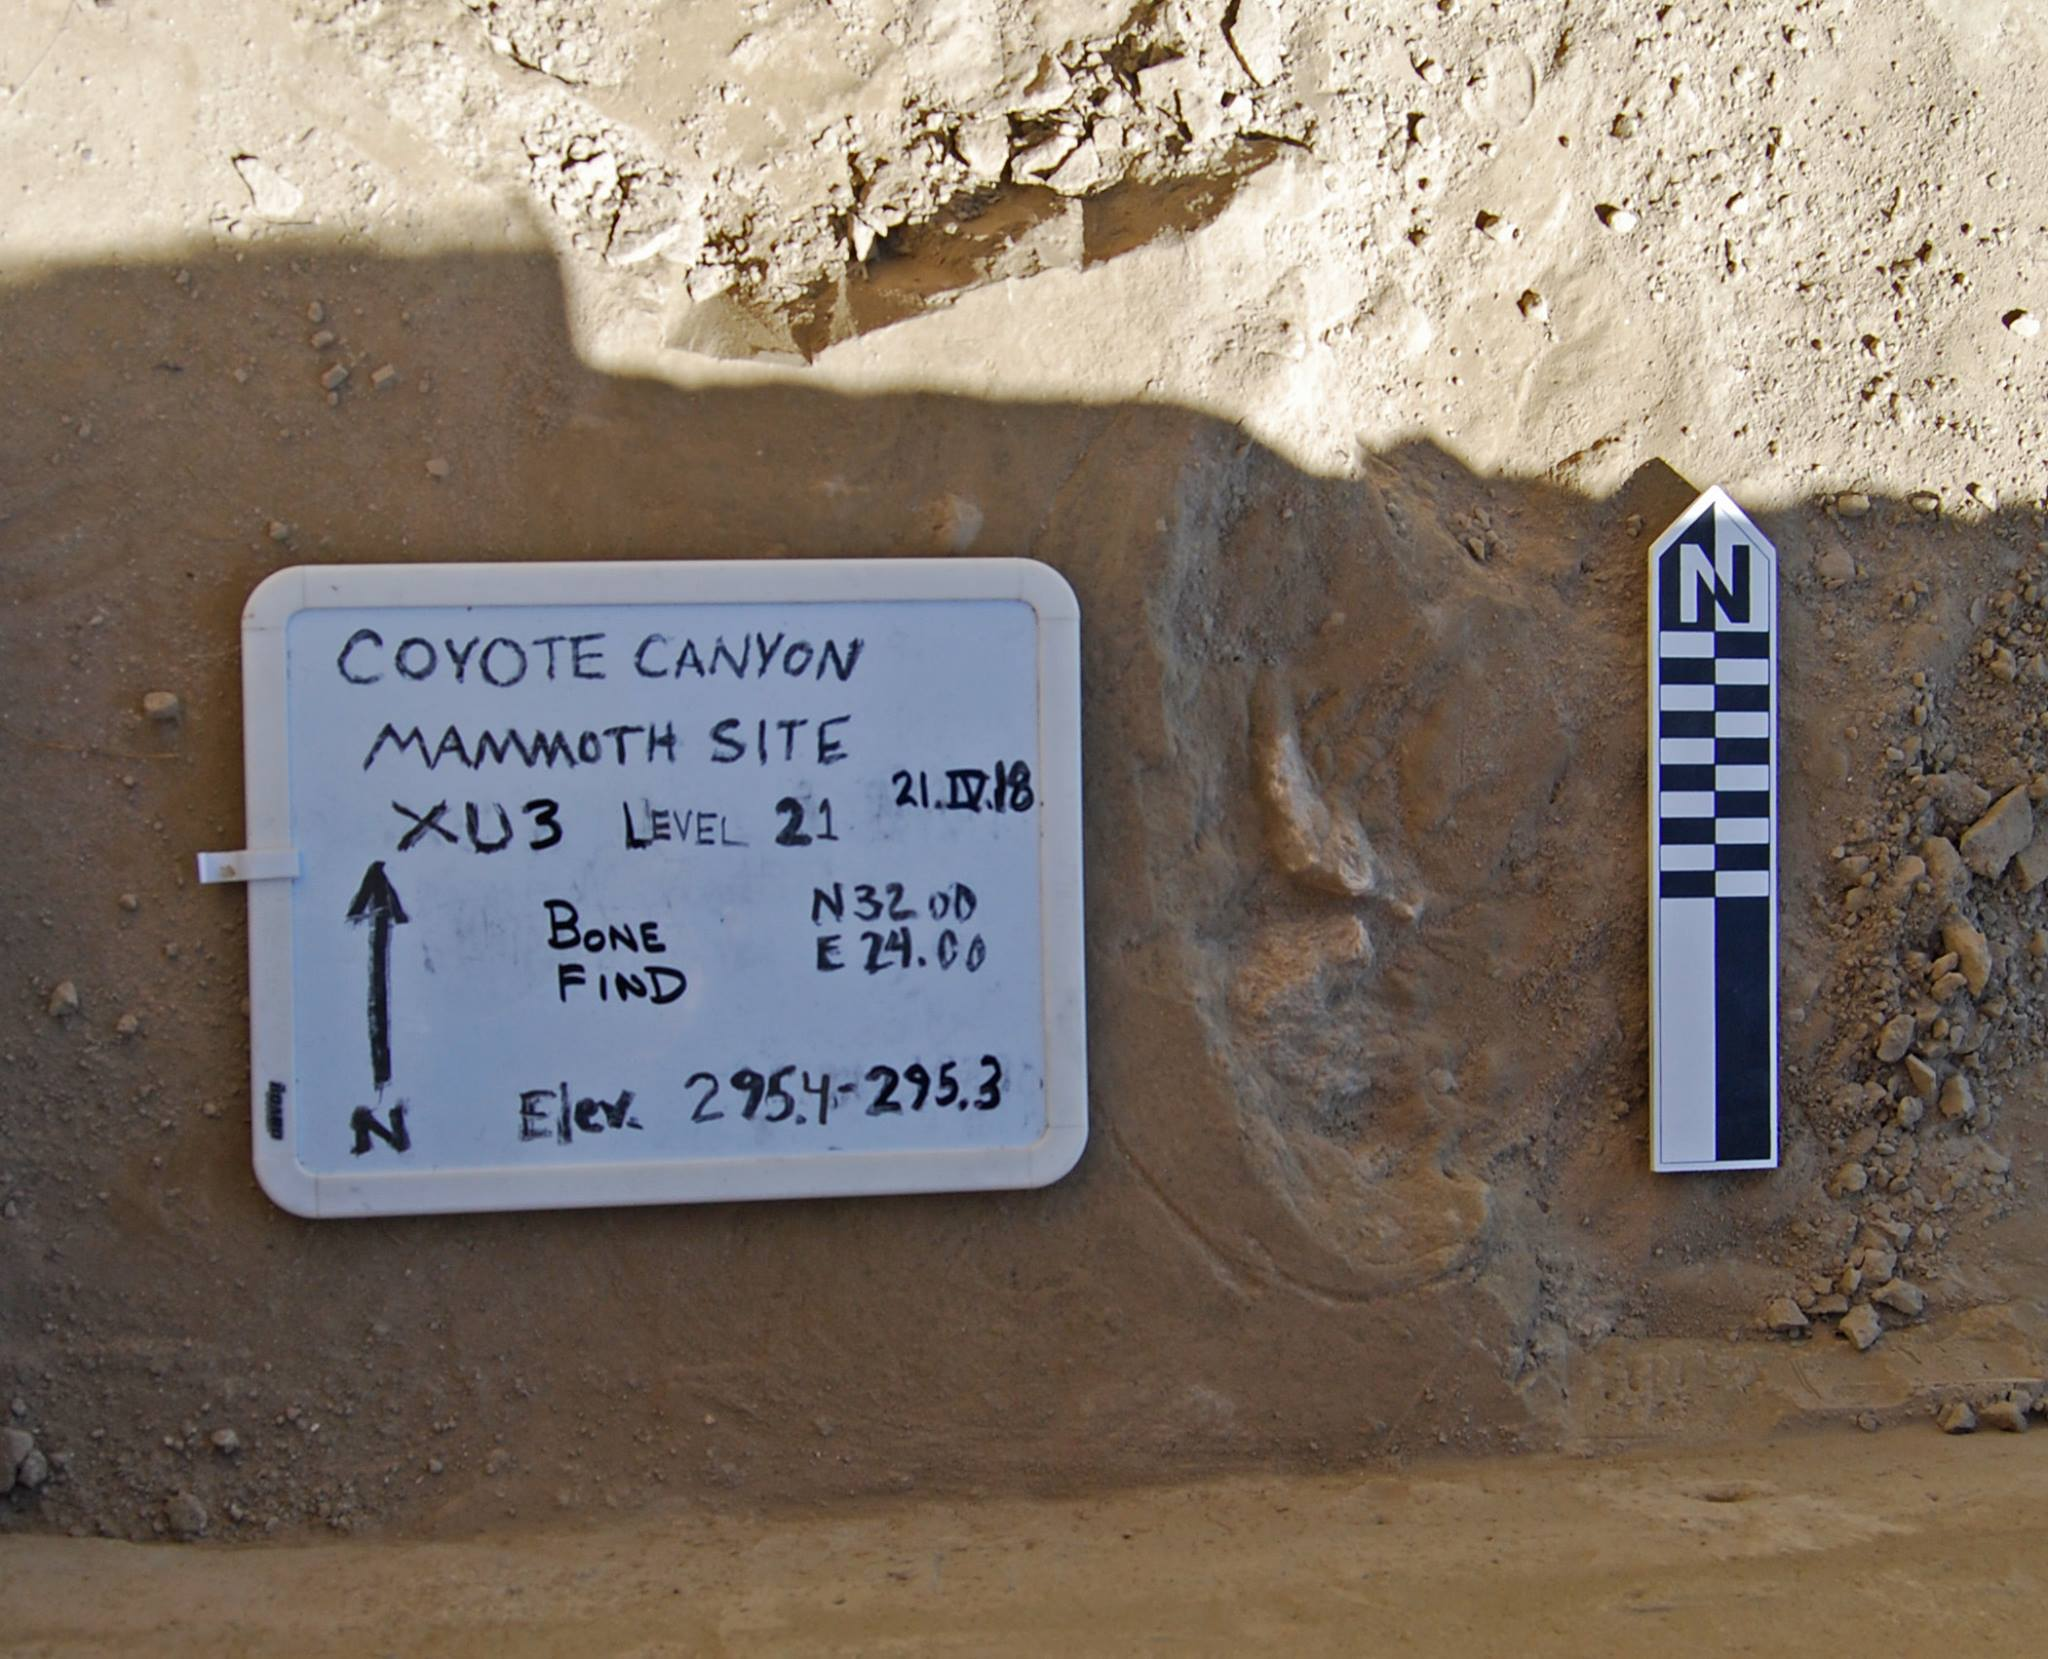 Bone find image at Coyote Canyon Dig Site. Image from MCBones Research Center Foundation Facebook page.